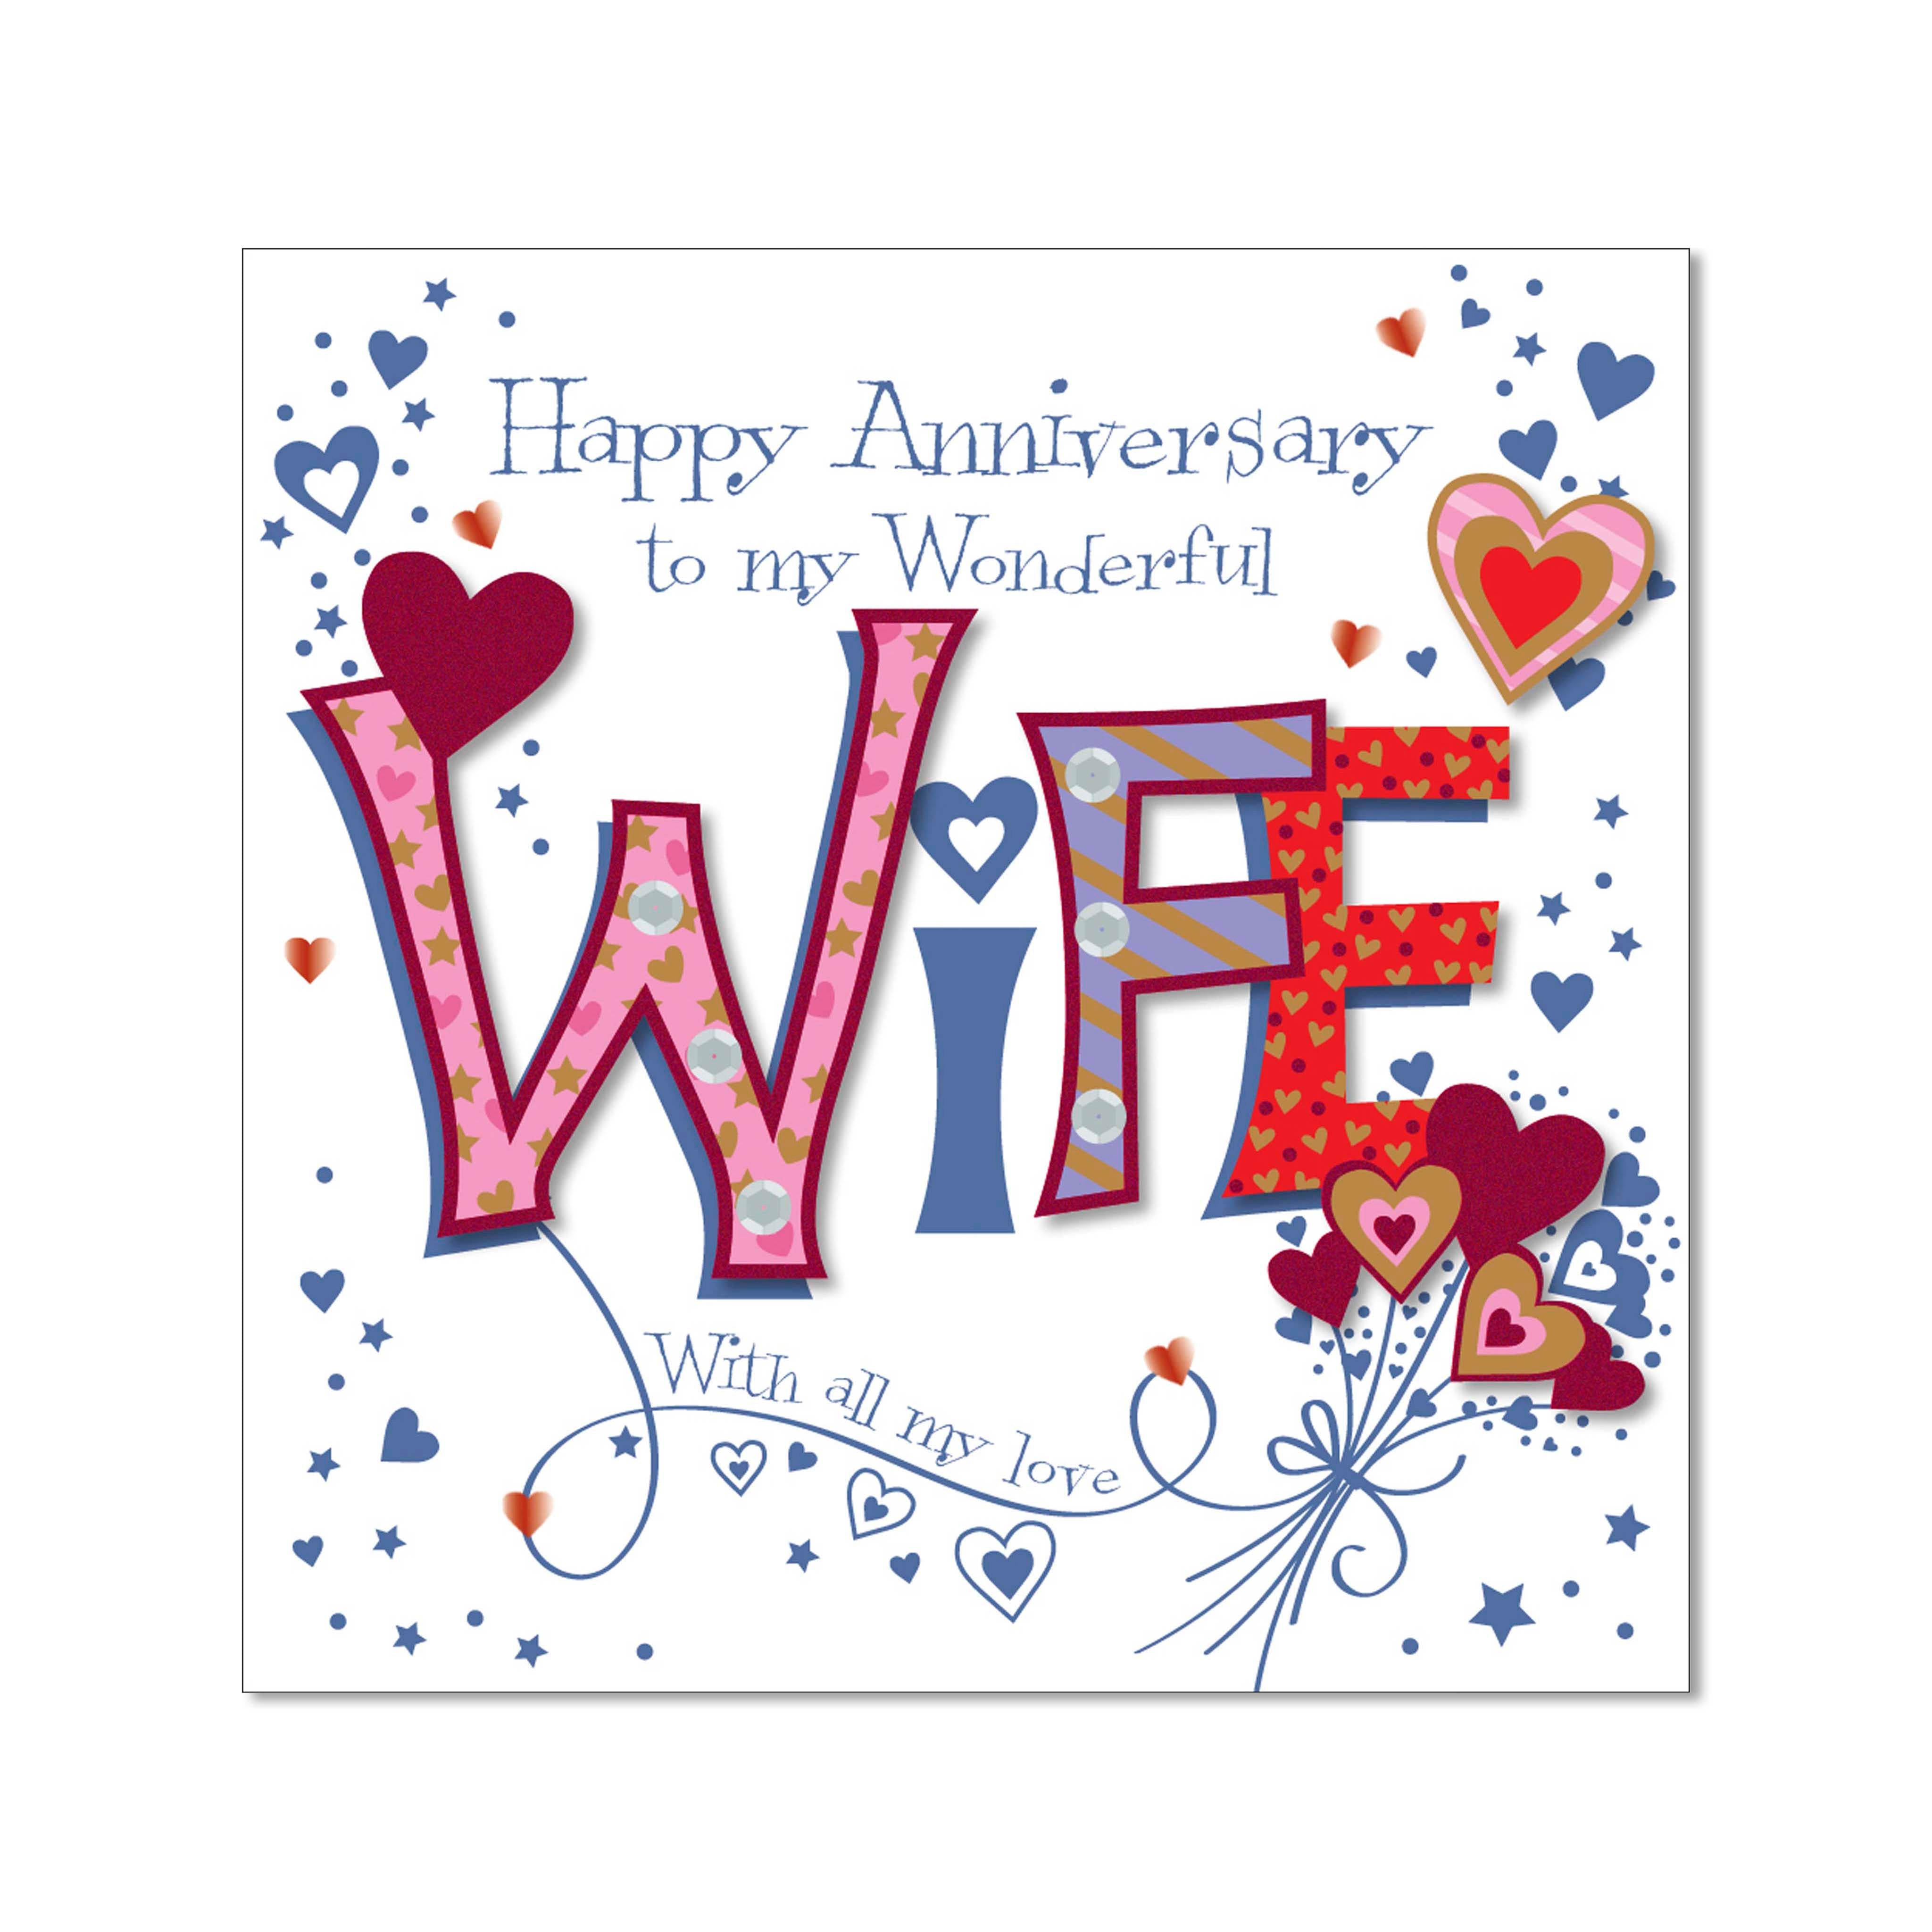 HAPPY ANNIVERSARY TO MY WONDERFUL WIFE